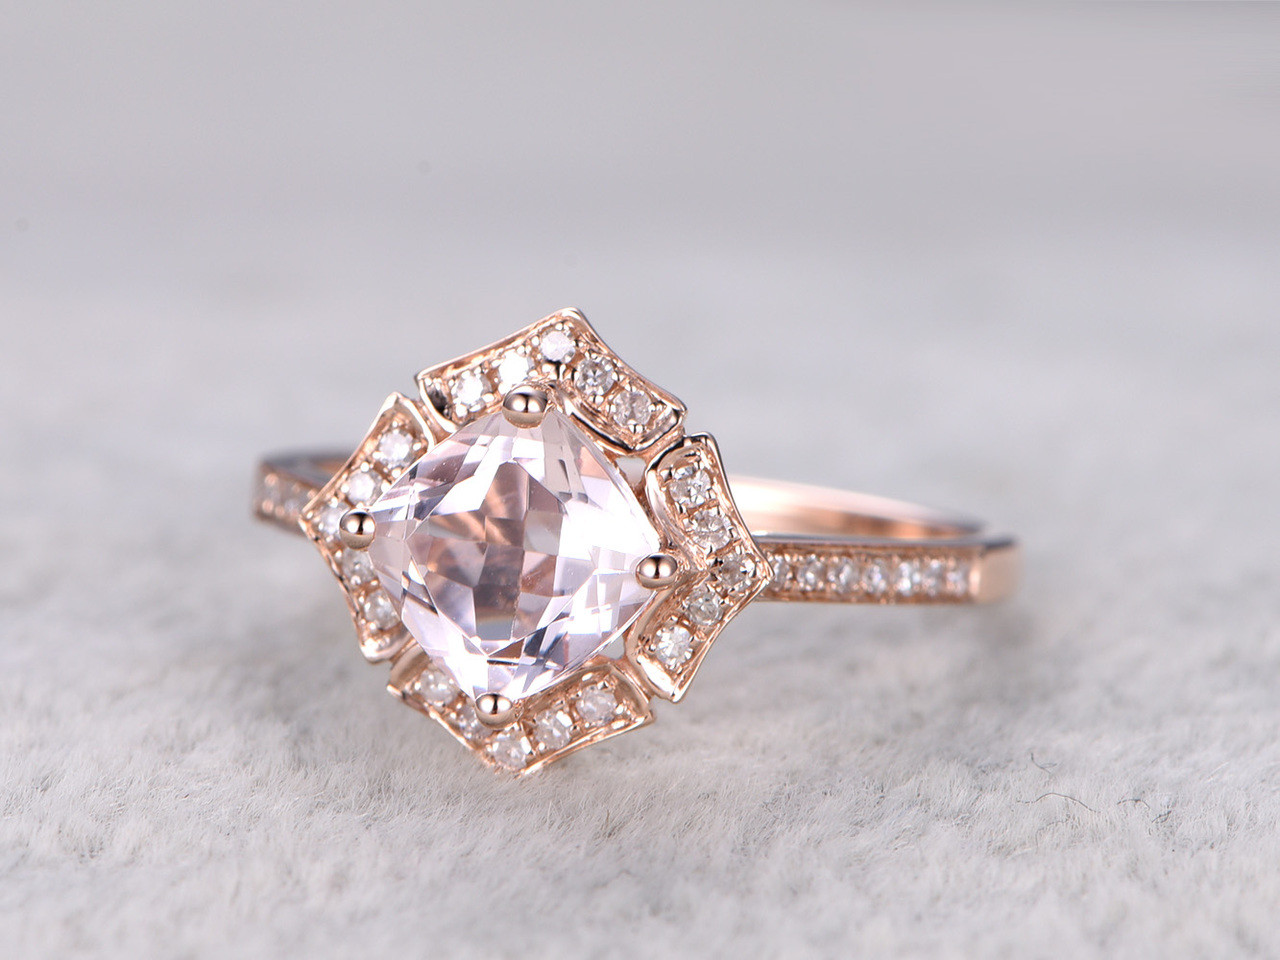 tw ring gold ct cut kay round zoom kaystore hover mv diamond zm white to en bands promise